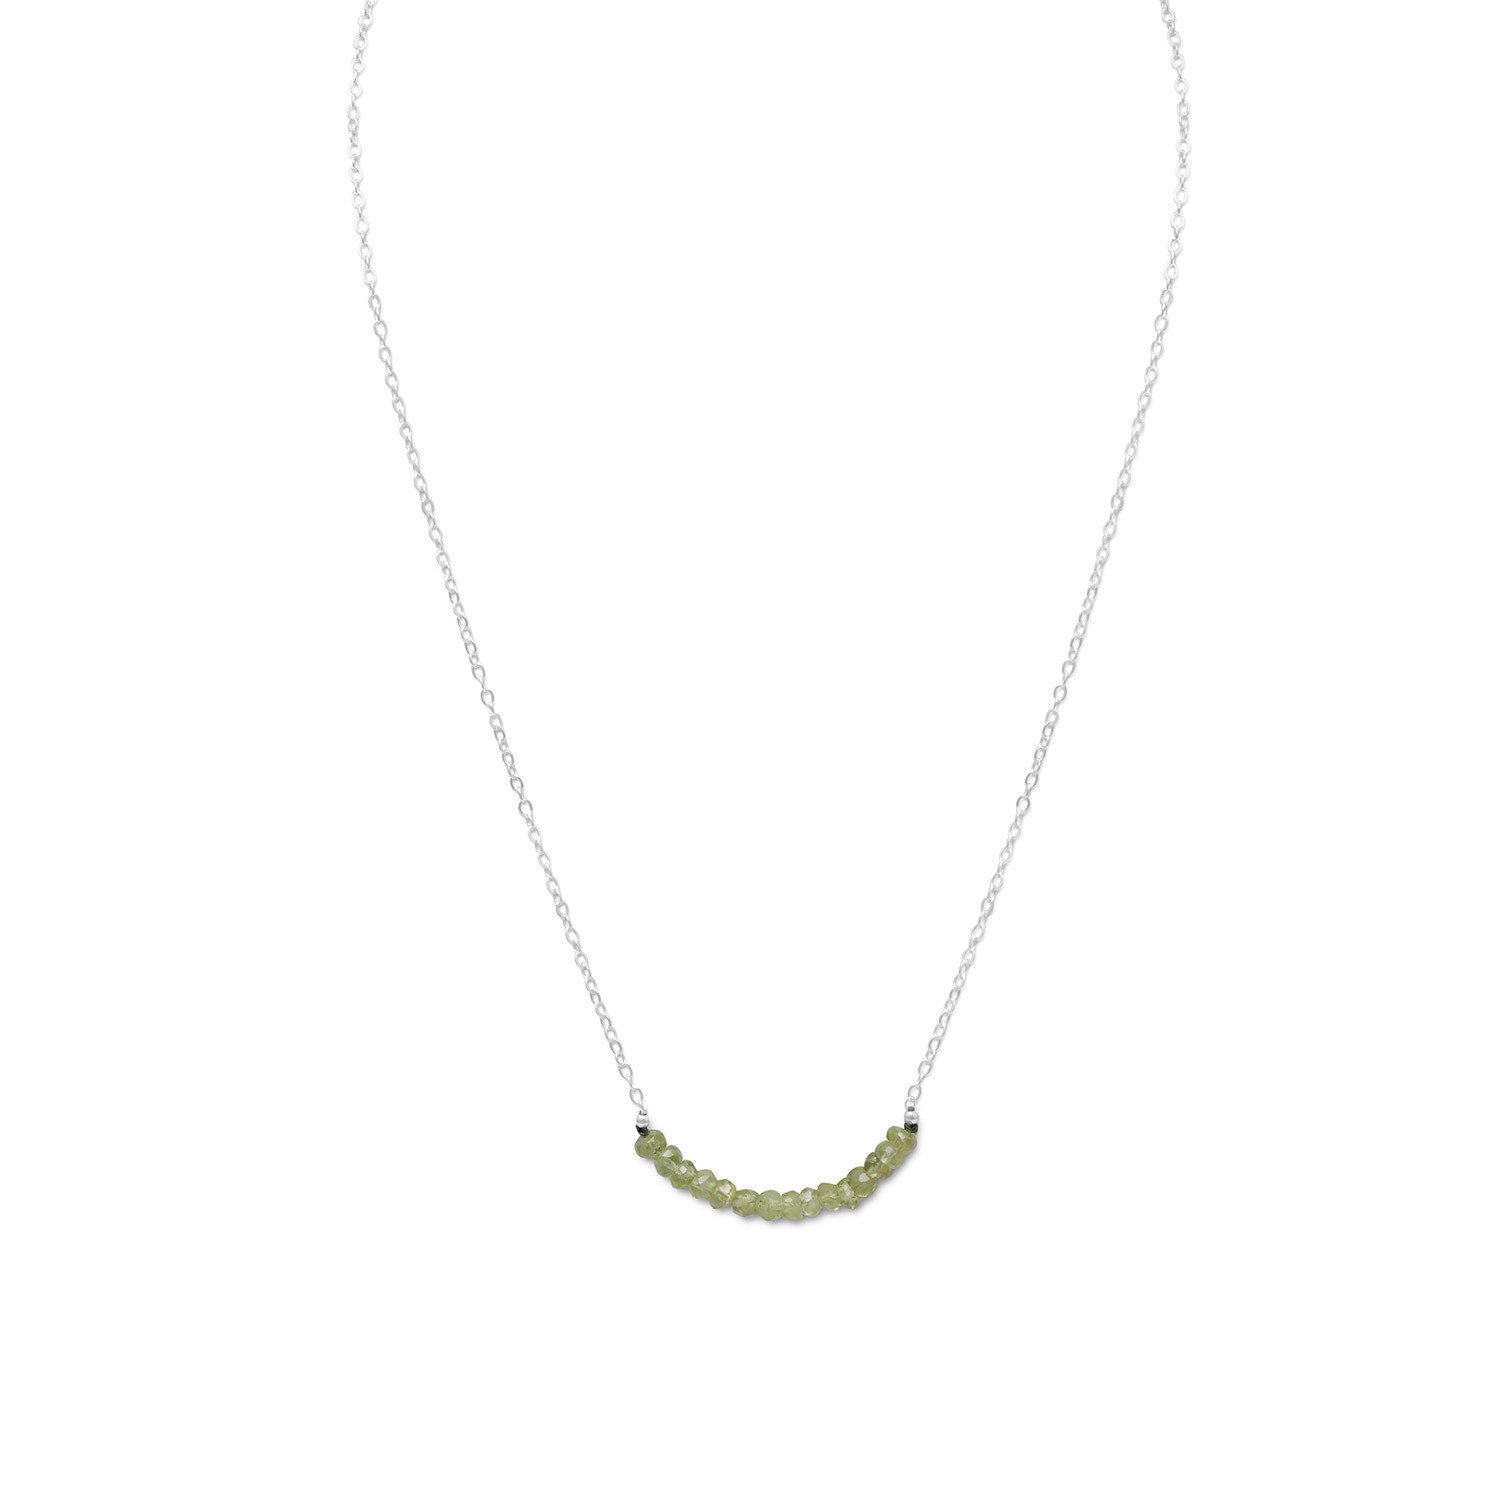 Faceted Peridot Bead Necklace – August Birthstone